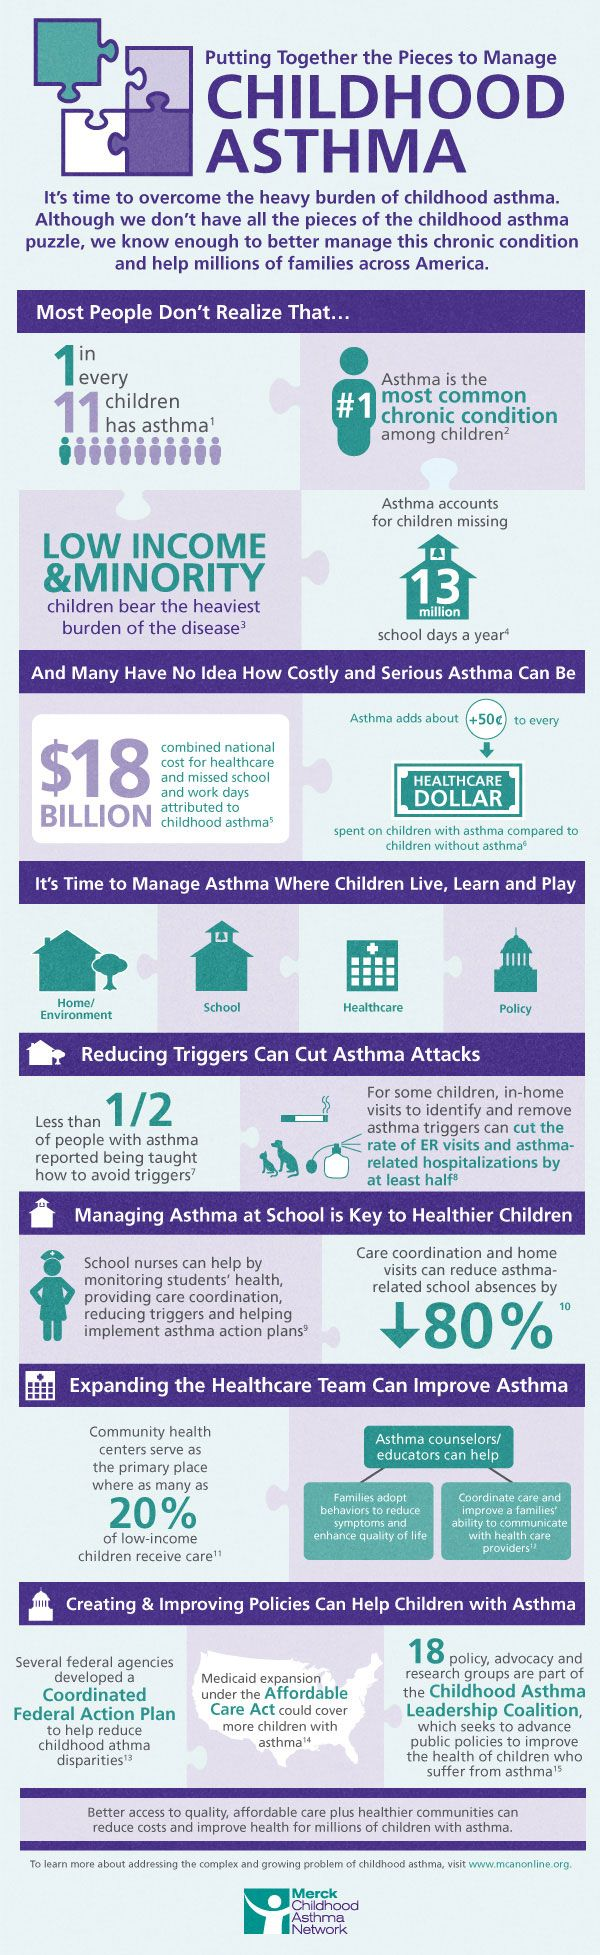 #INFOgraphic > Fighting Children Asthma: Did you know that asthma is the most common chronic disease among children and that brings about 13KK of missing school days in America? This report addresses 4 approaches to better management of childhood asthma.  > http://infographicsmania.com/fighting-children-asthma/